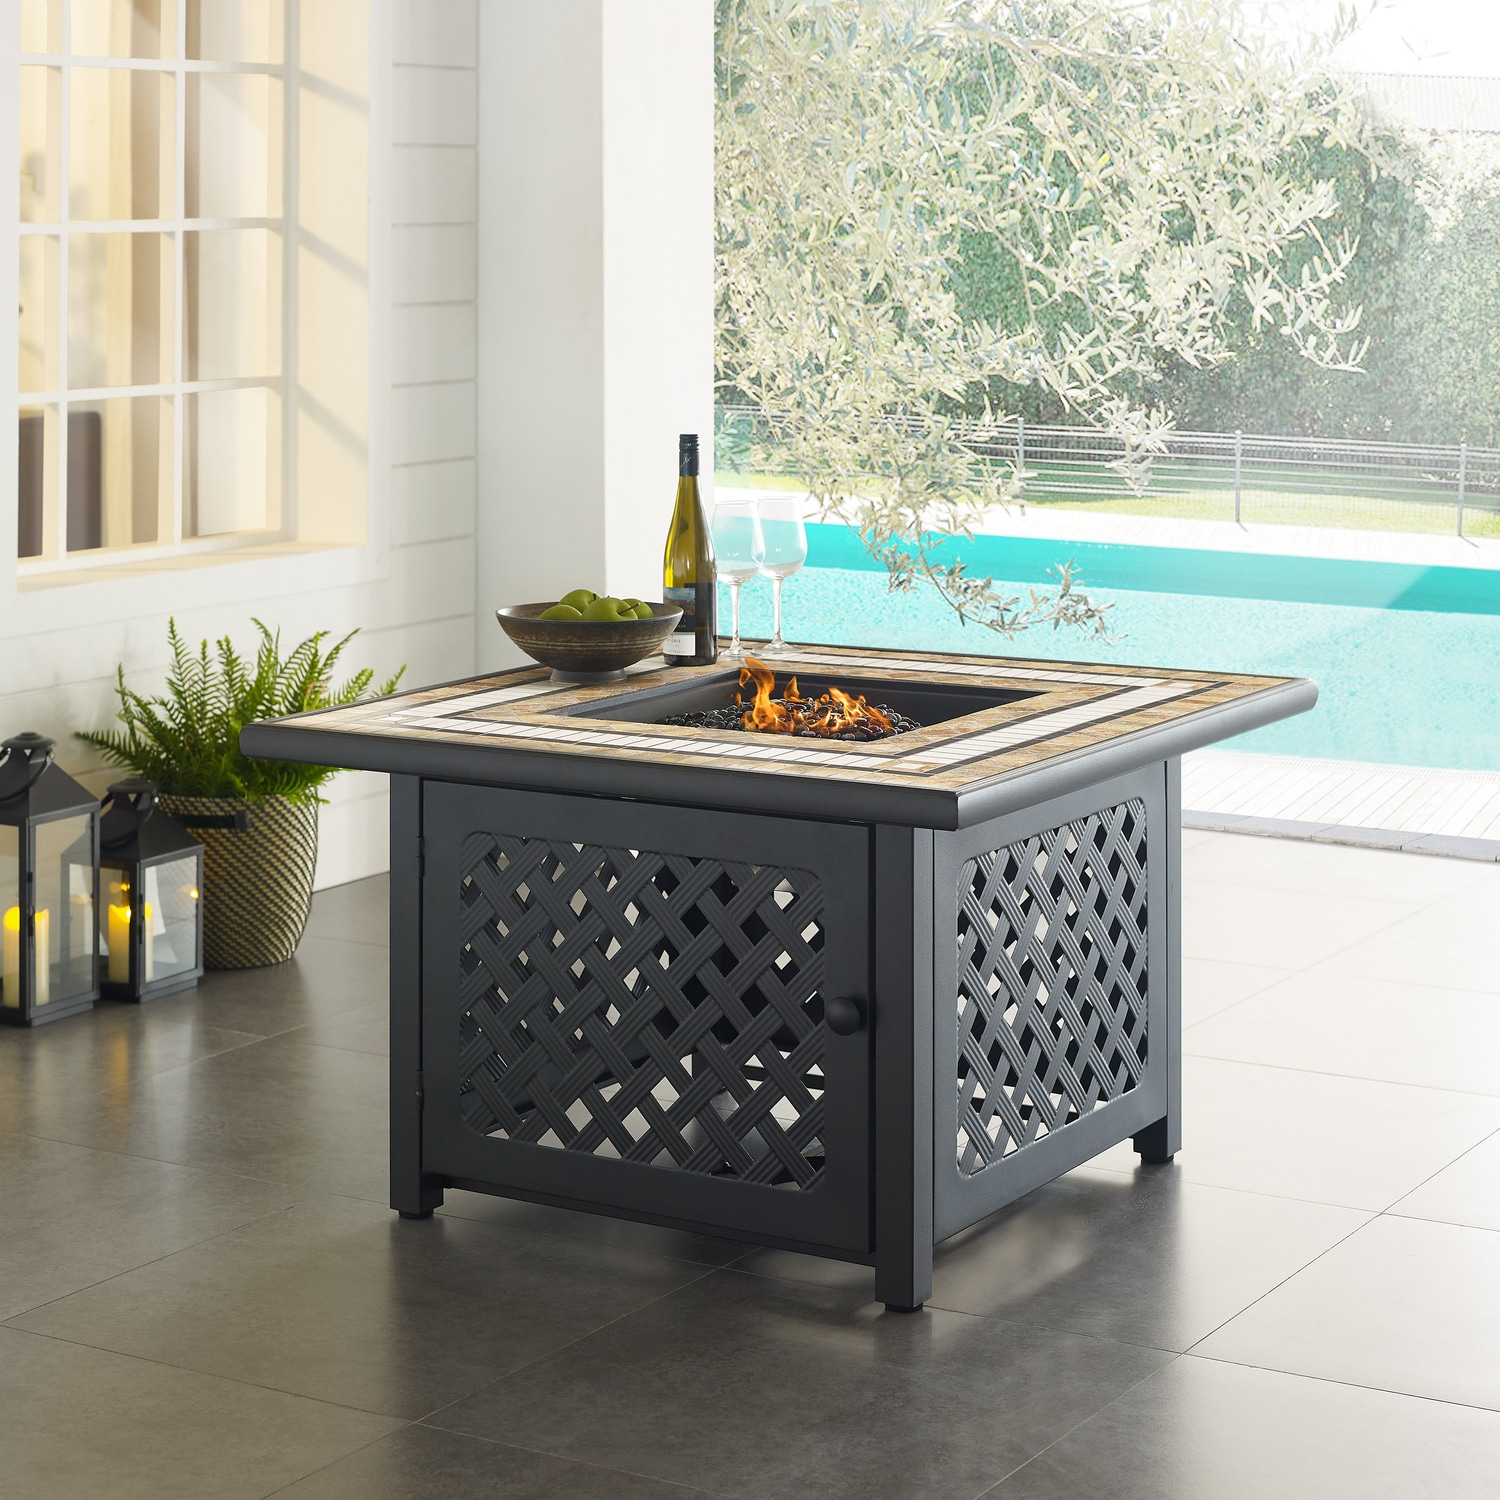 Outdoor Furniture - Brizo Fire Table